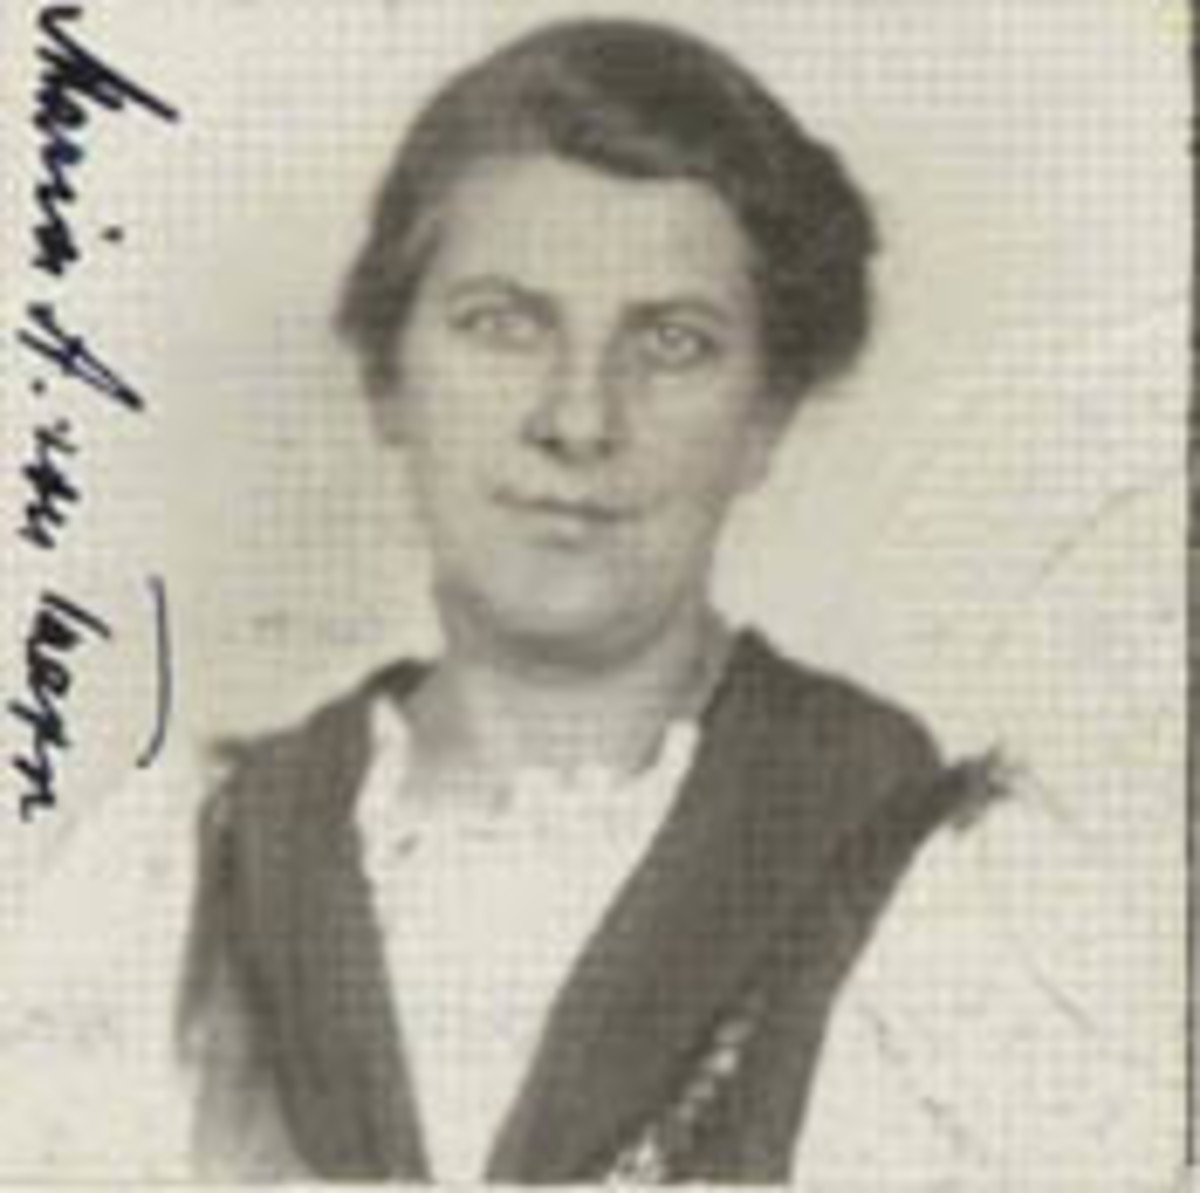 Maria von Trapp, official immigration documents